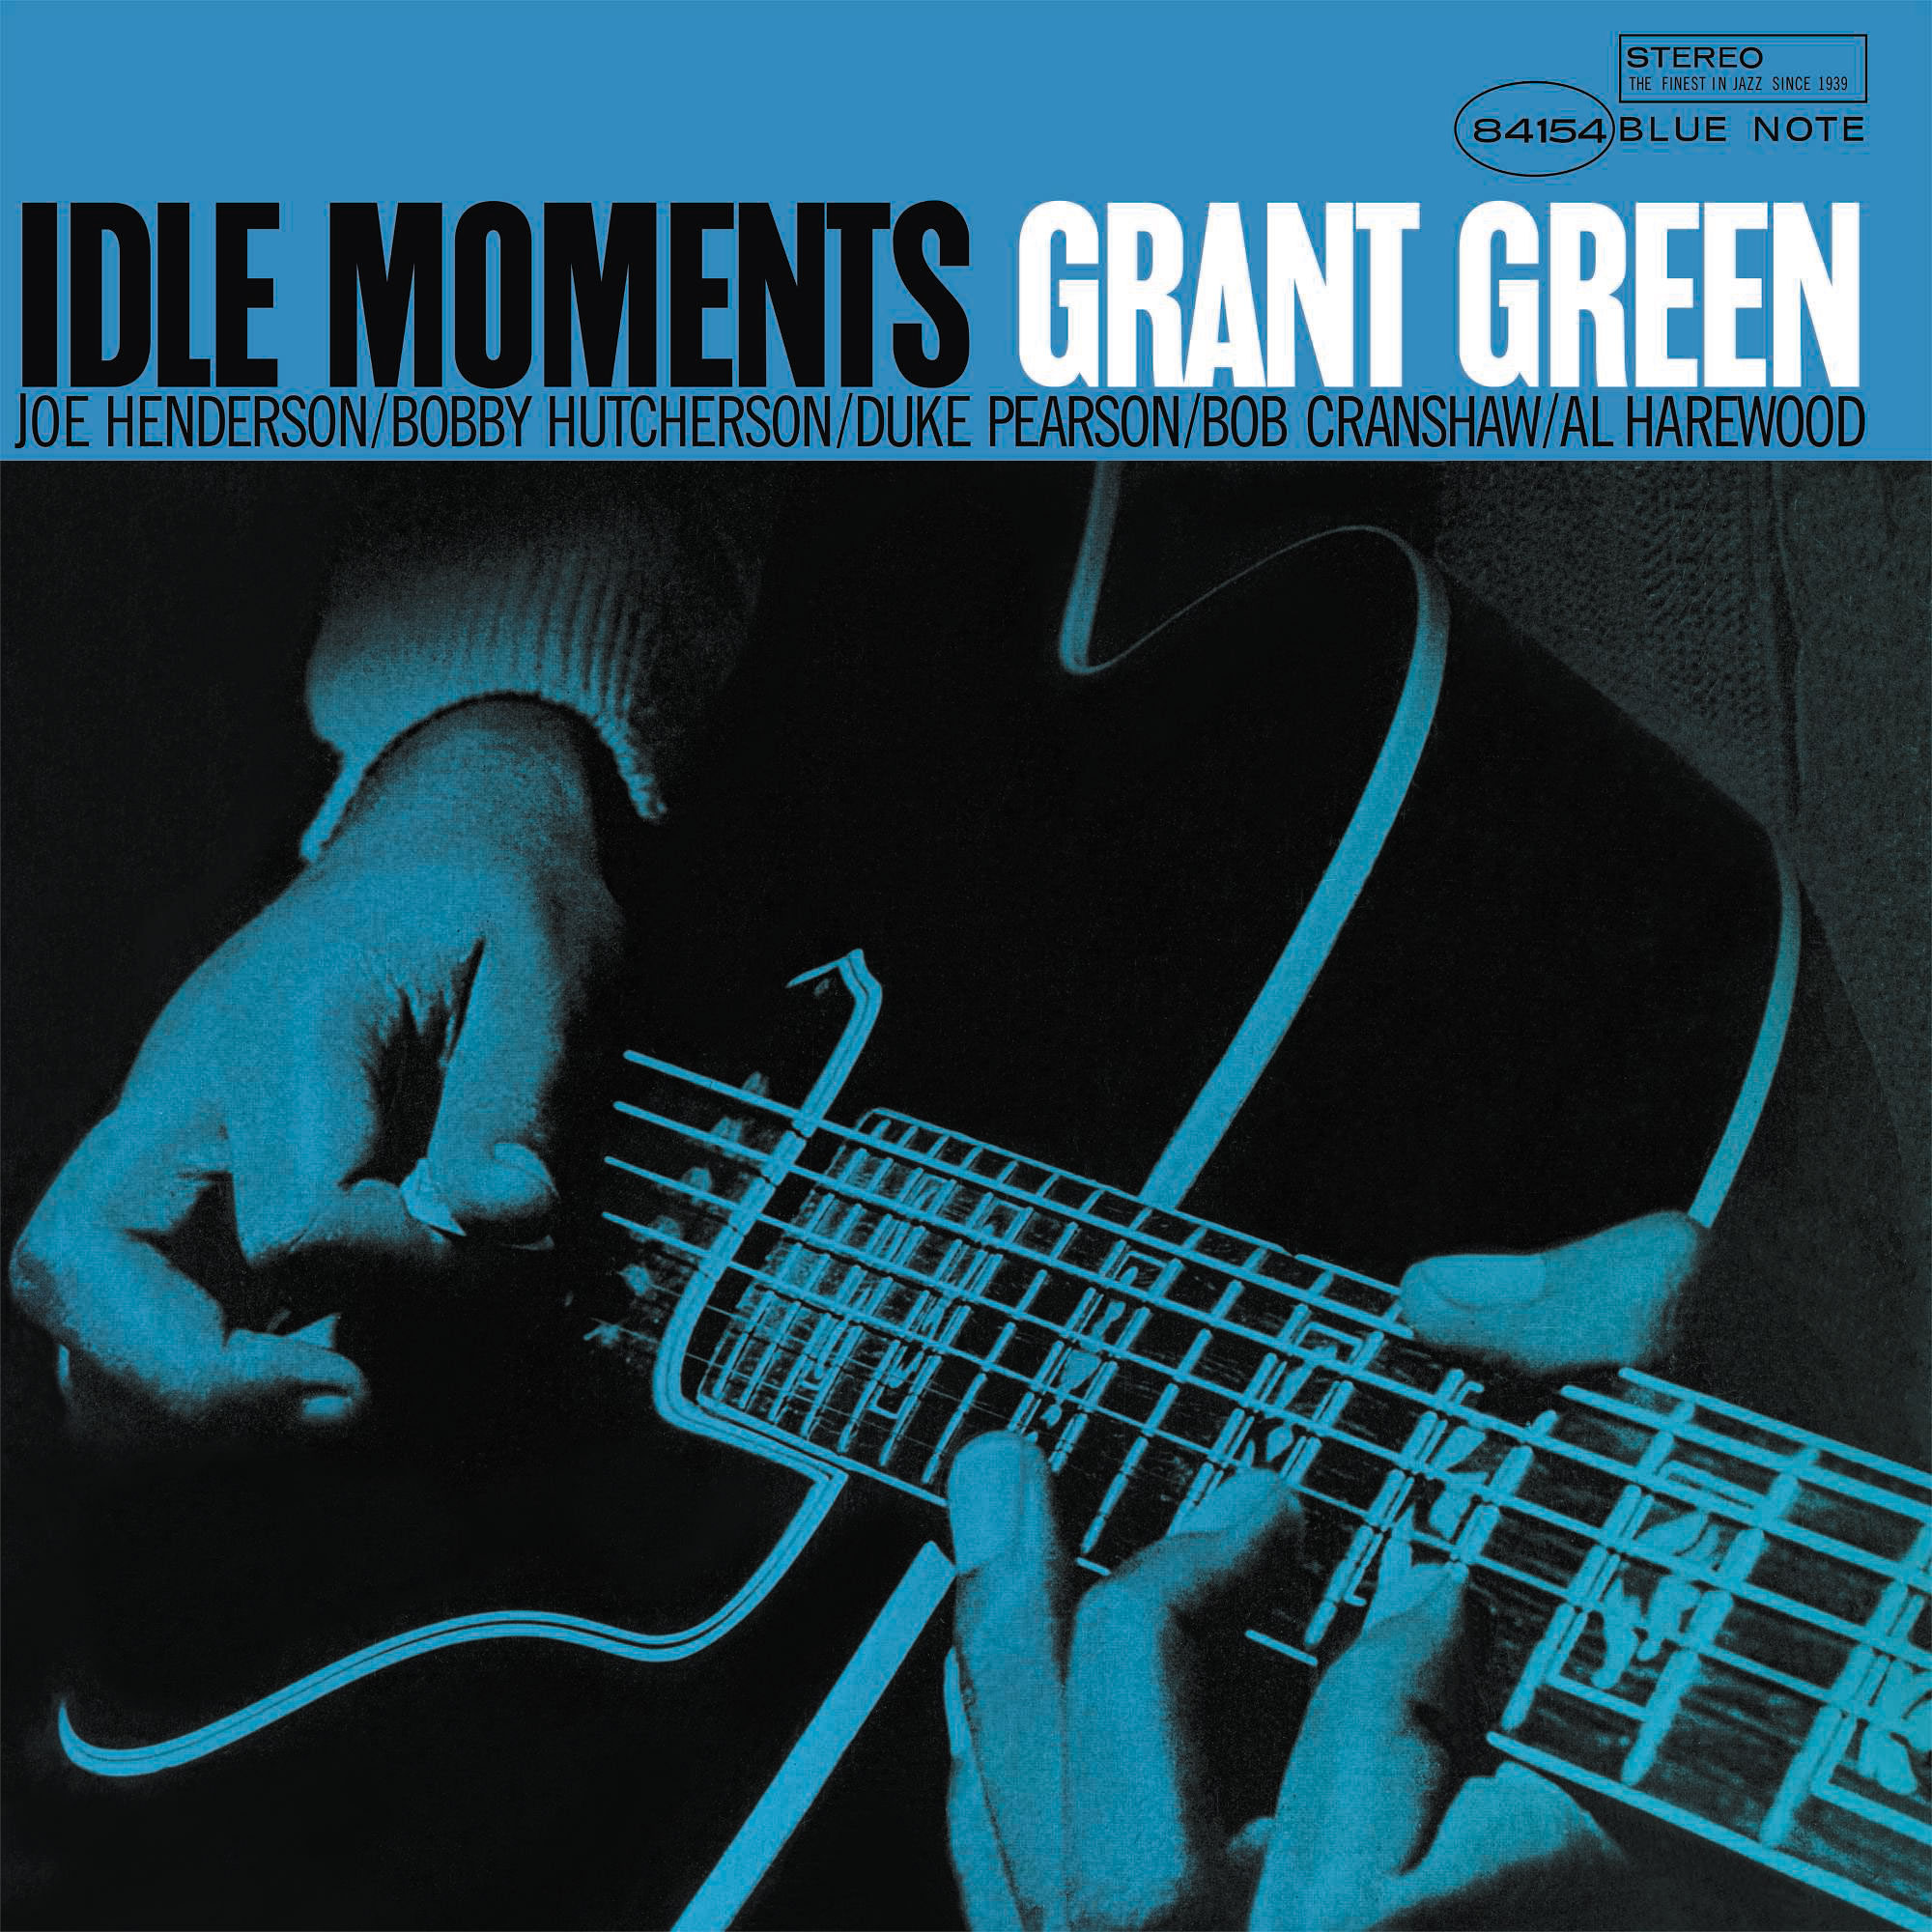 Grant Green Idle Moments (Blue Note Classic Vinyl Edition) 180g LP